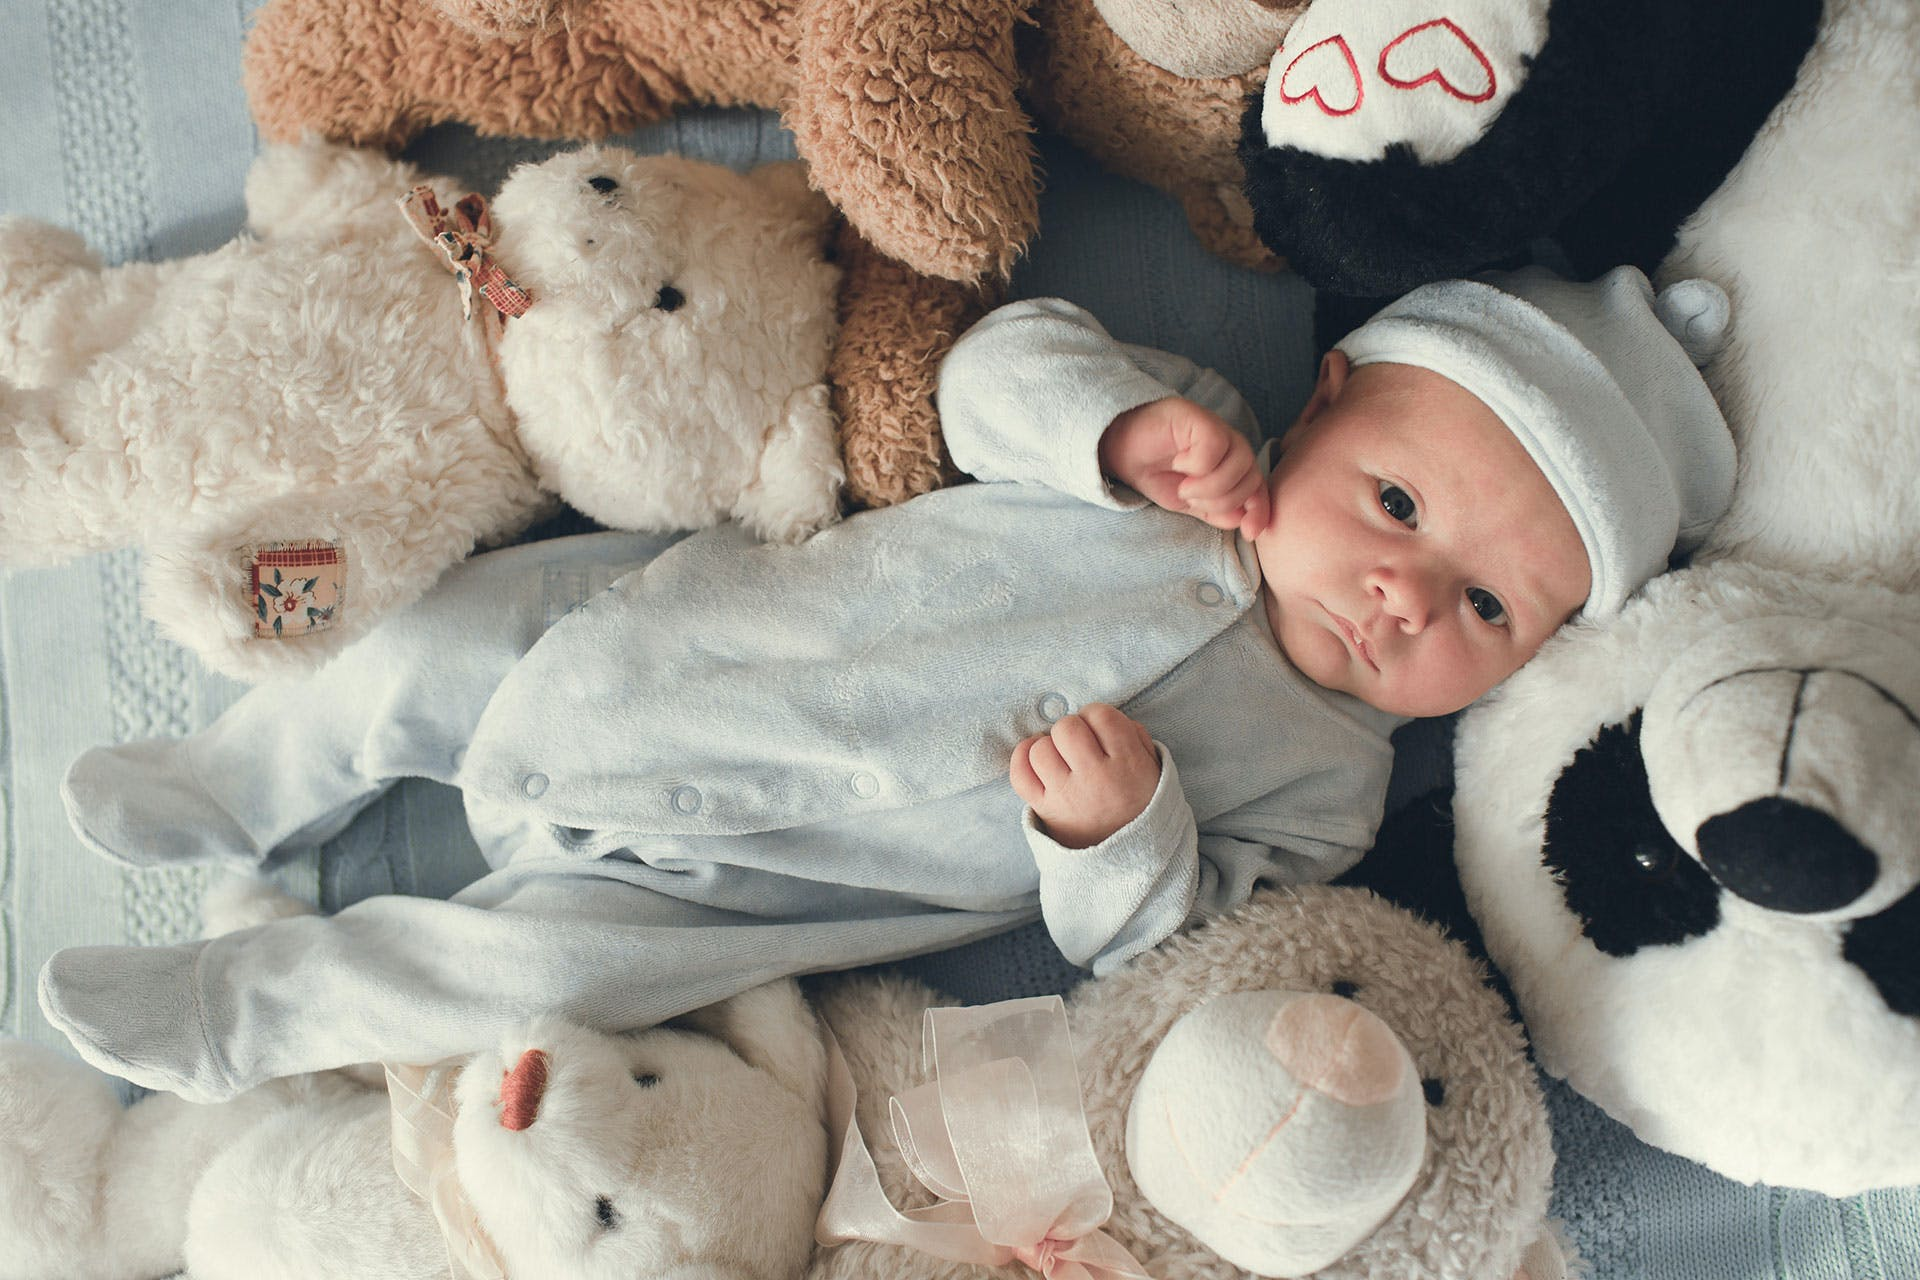 Image of baby with teddy bear